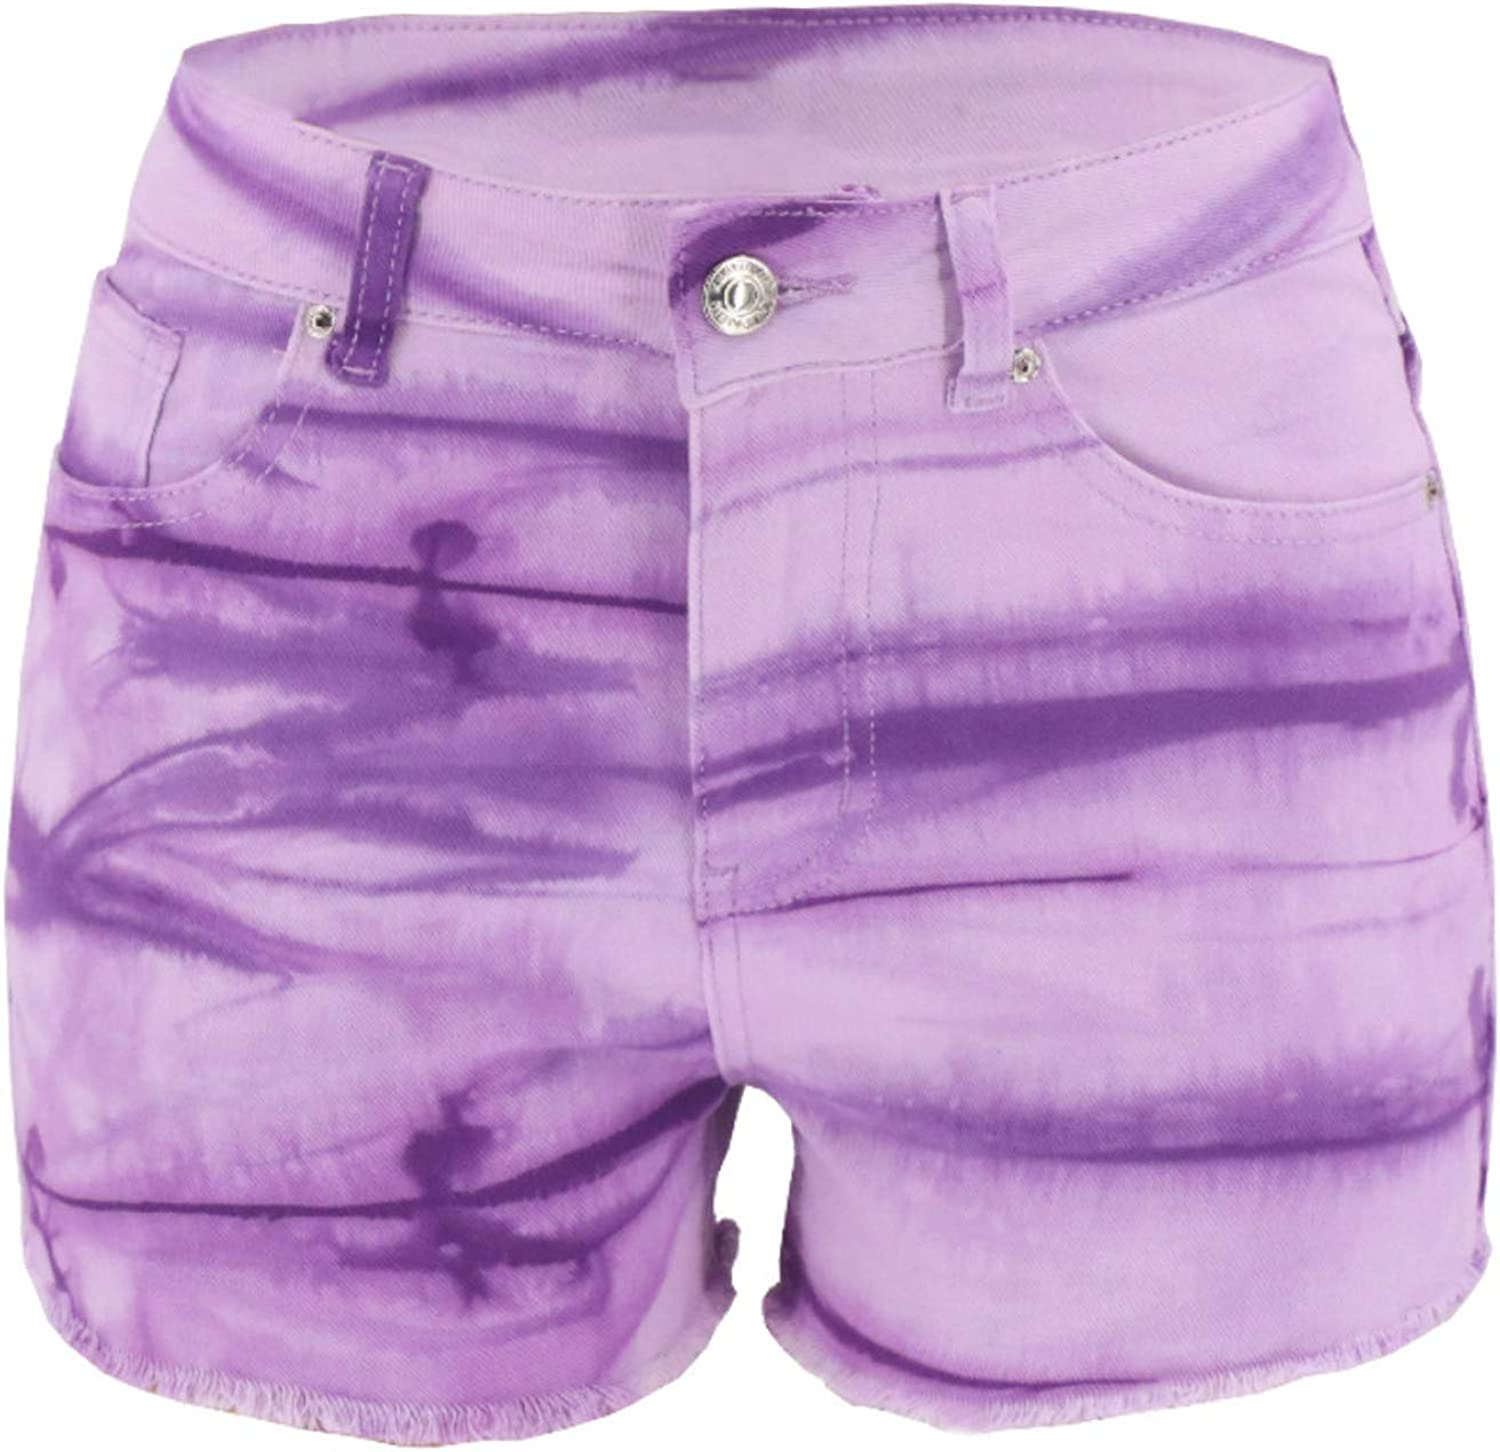 Denim Shorts for Women Frayed Distressed Jean Short Cute Mid Rise Ripped Hot Shorts Slim Tie-dye Comfy Stretchy Denim Jeans